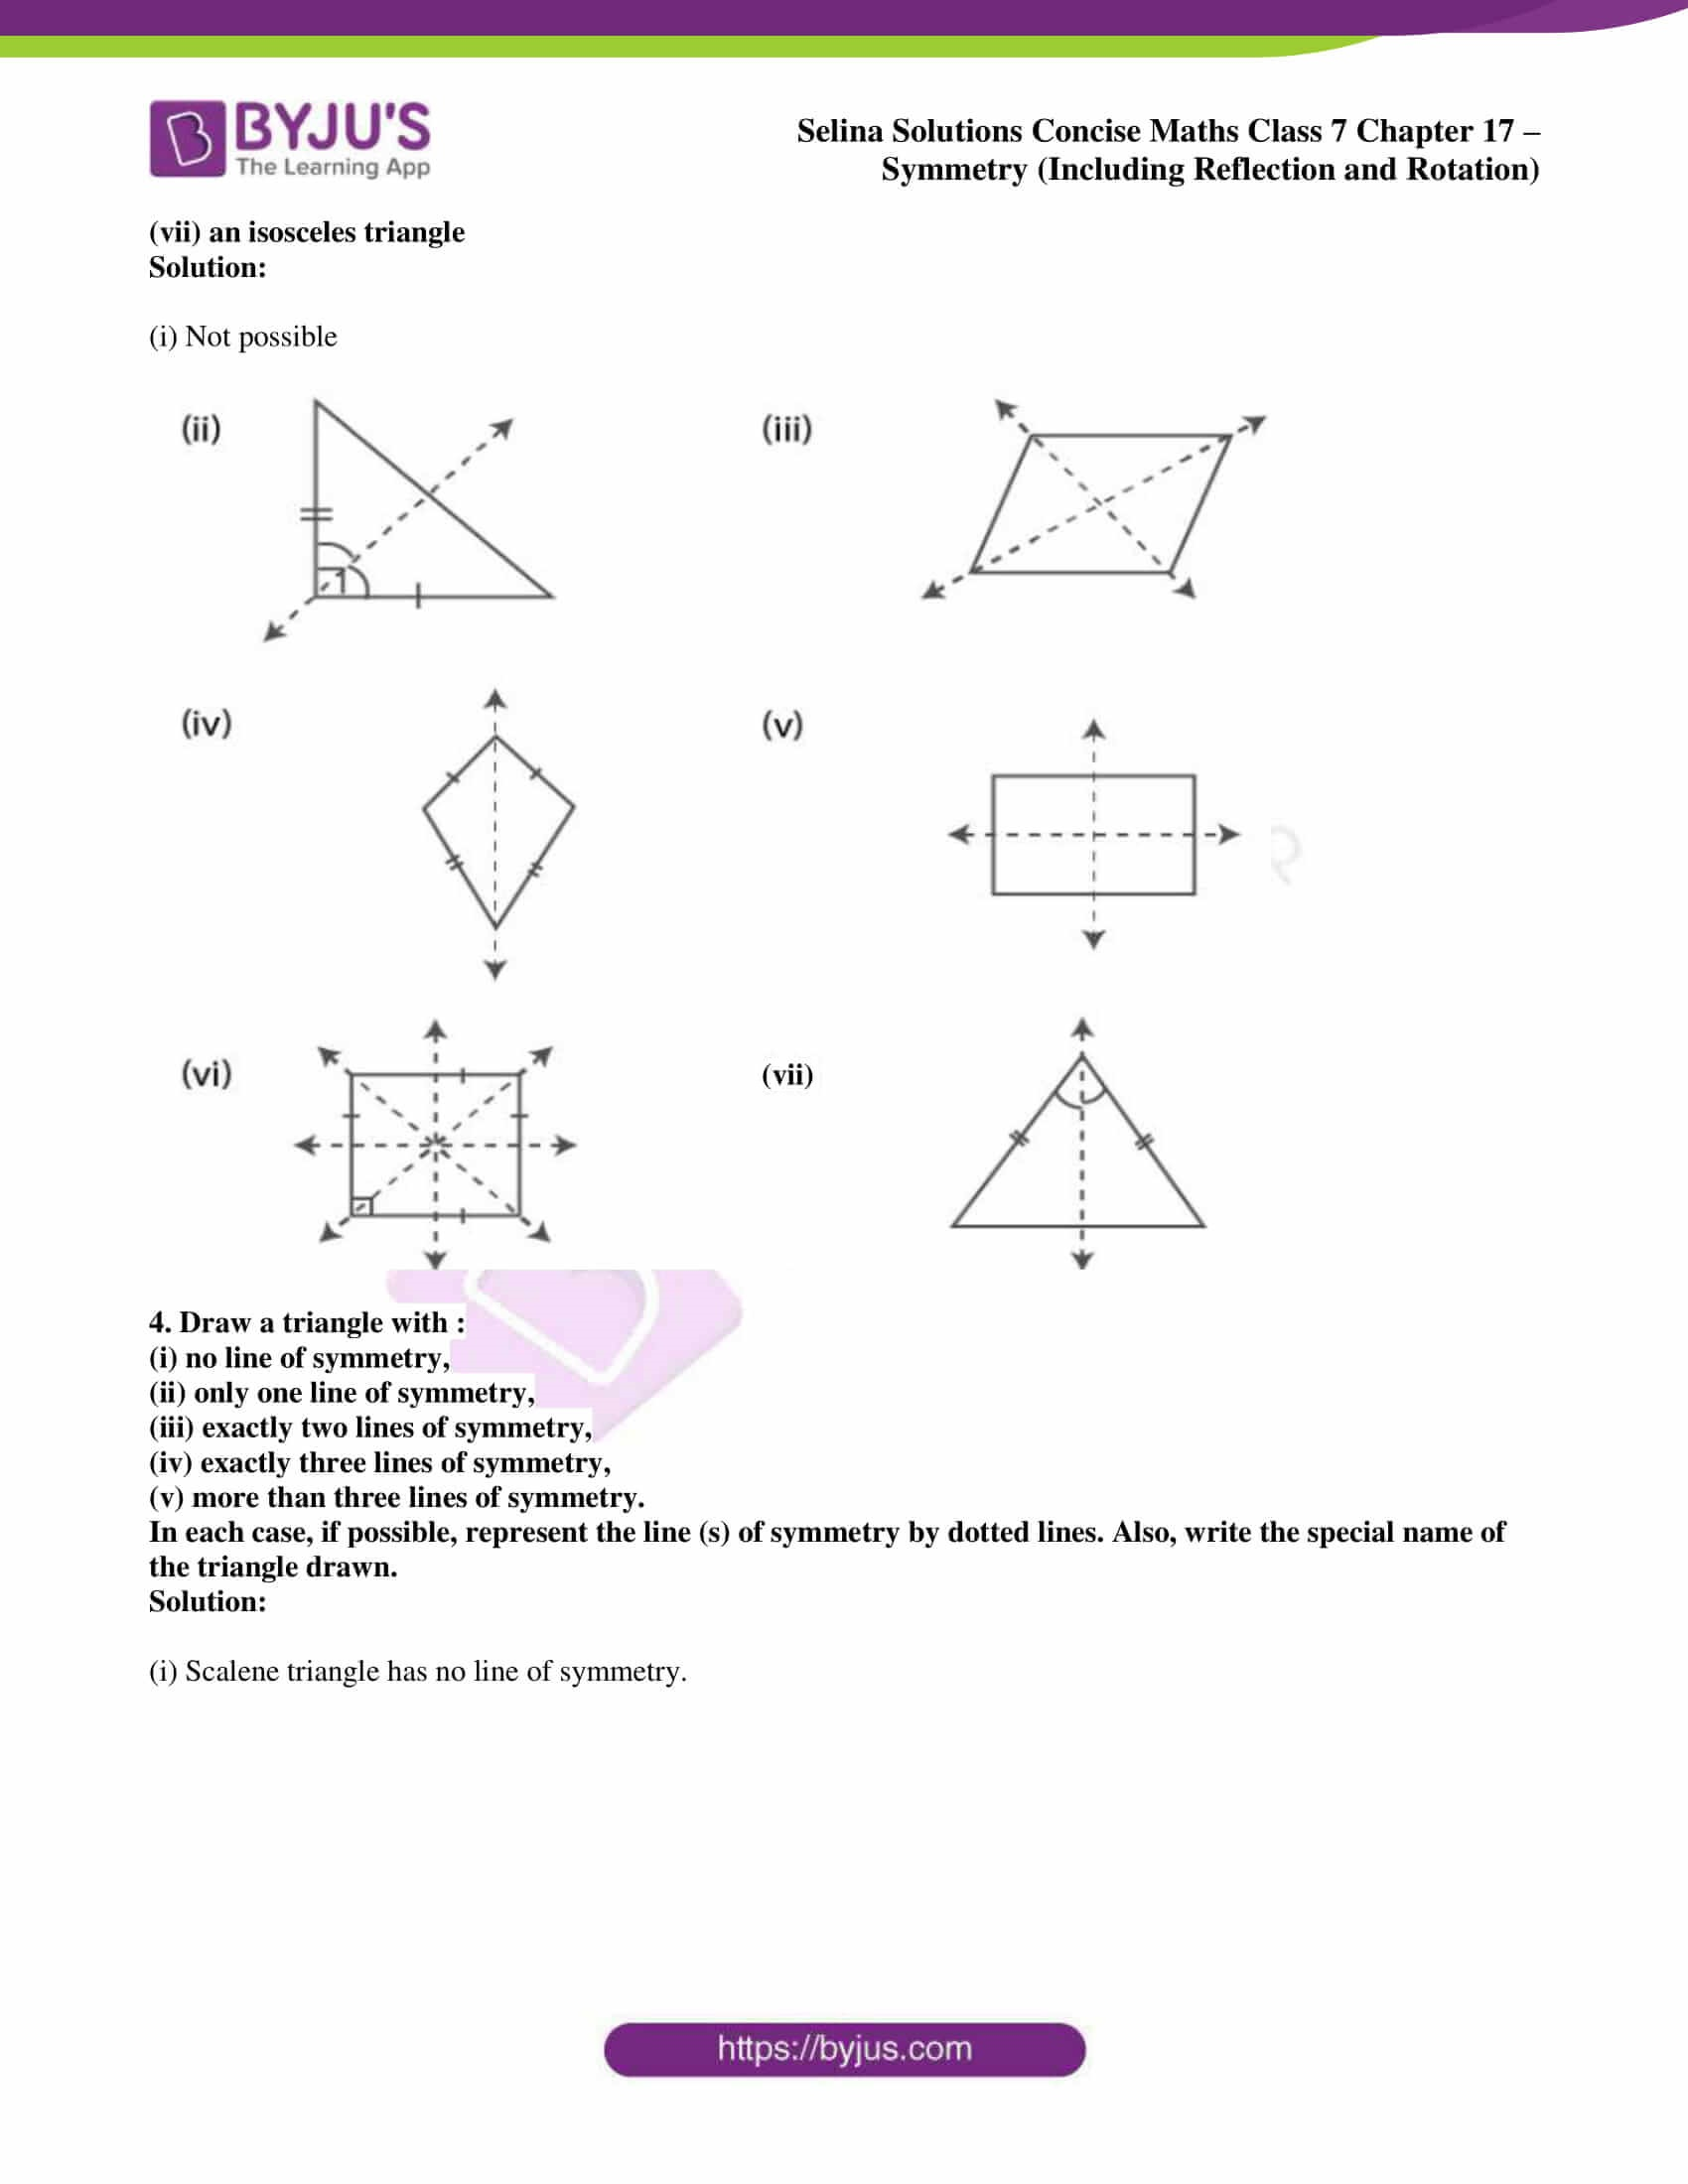 selina sol concise maths class 7 chapter 17 ex a 3